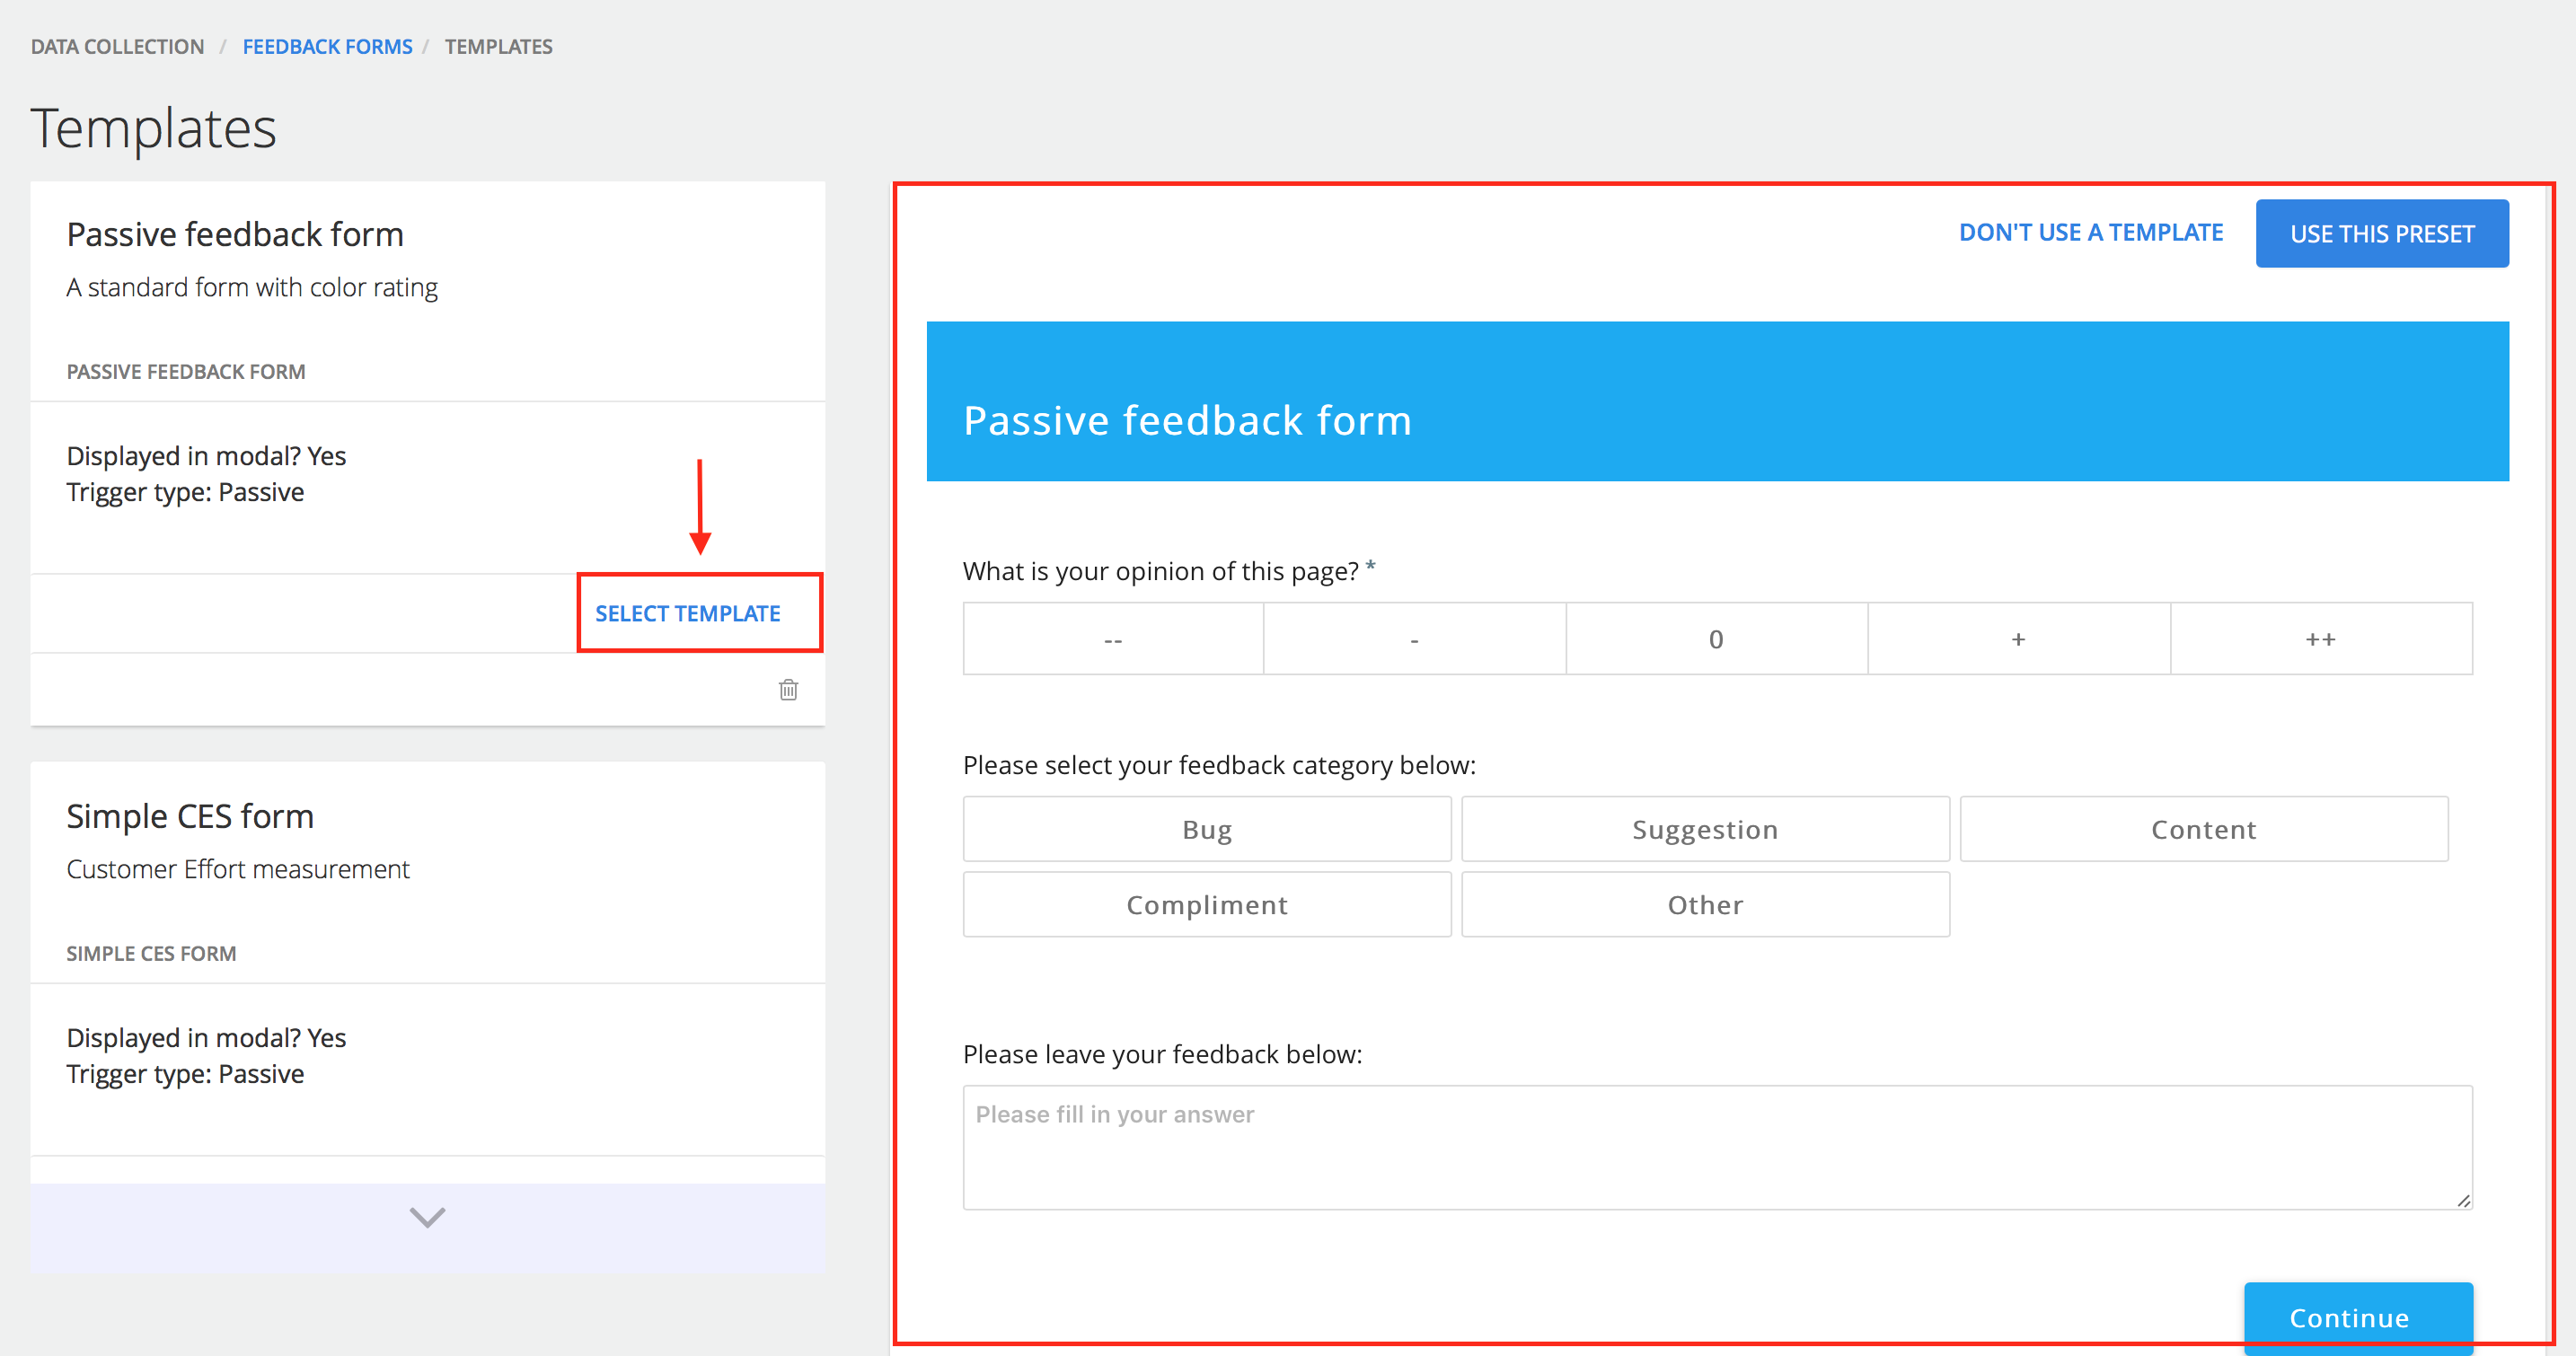 How do I build a feedback form by using a form template